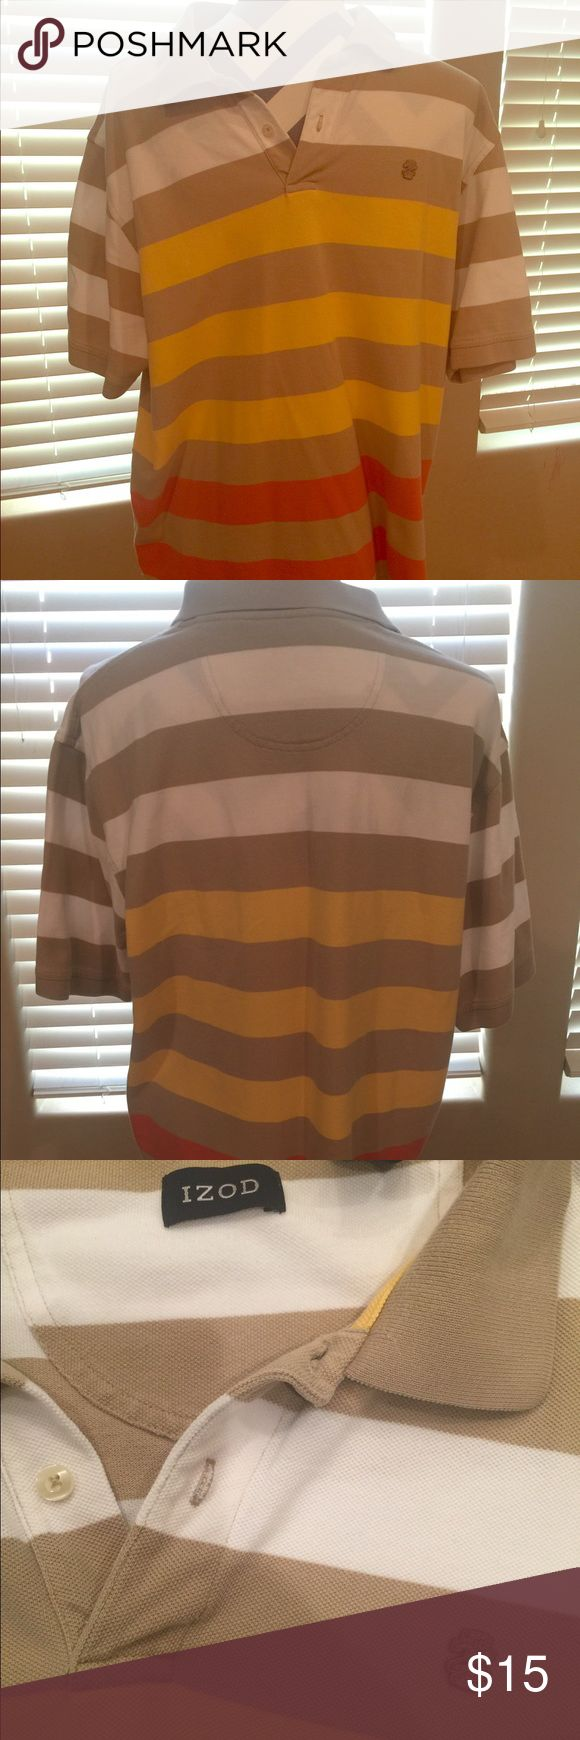 IZOD striped polo shirt IZOD striped polo shirt with yellow, white, tan, and red. Very sharp shirt. XL Izod Shirts Polos